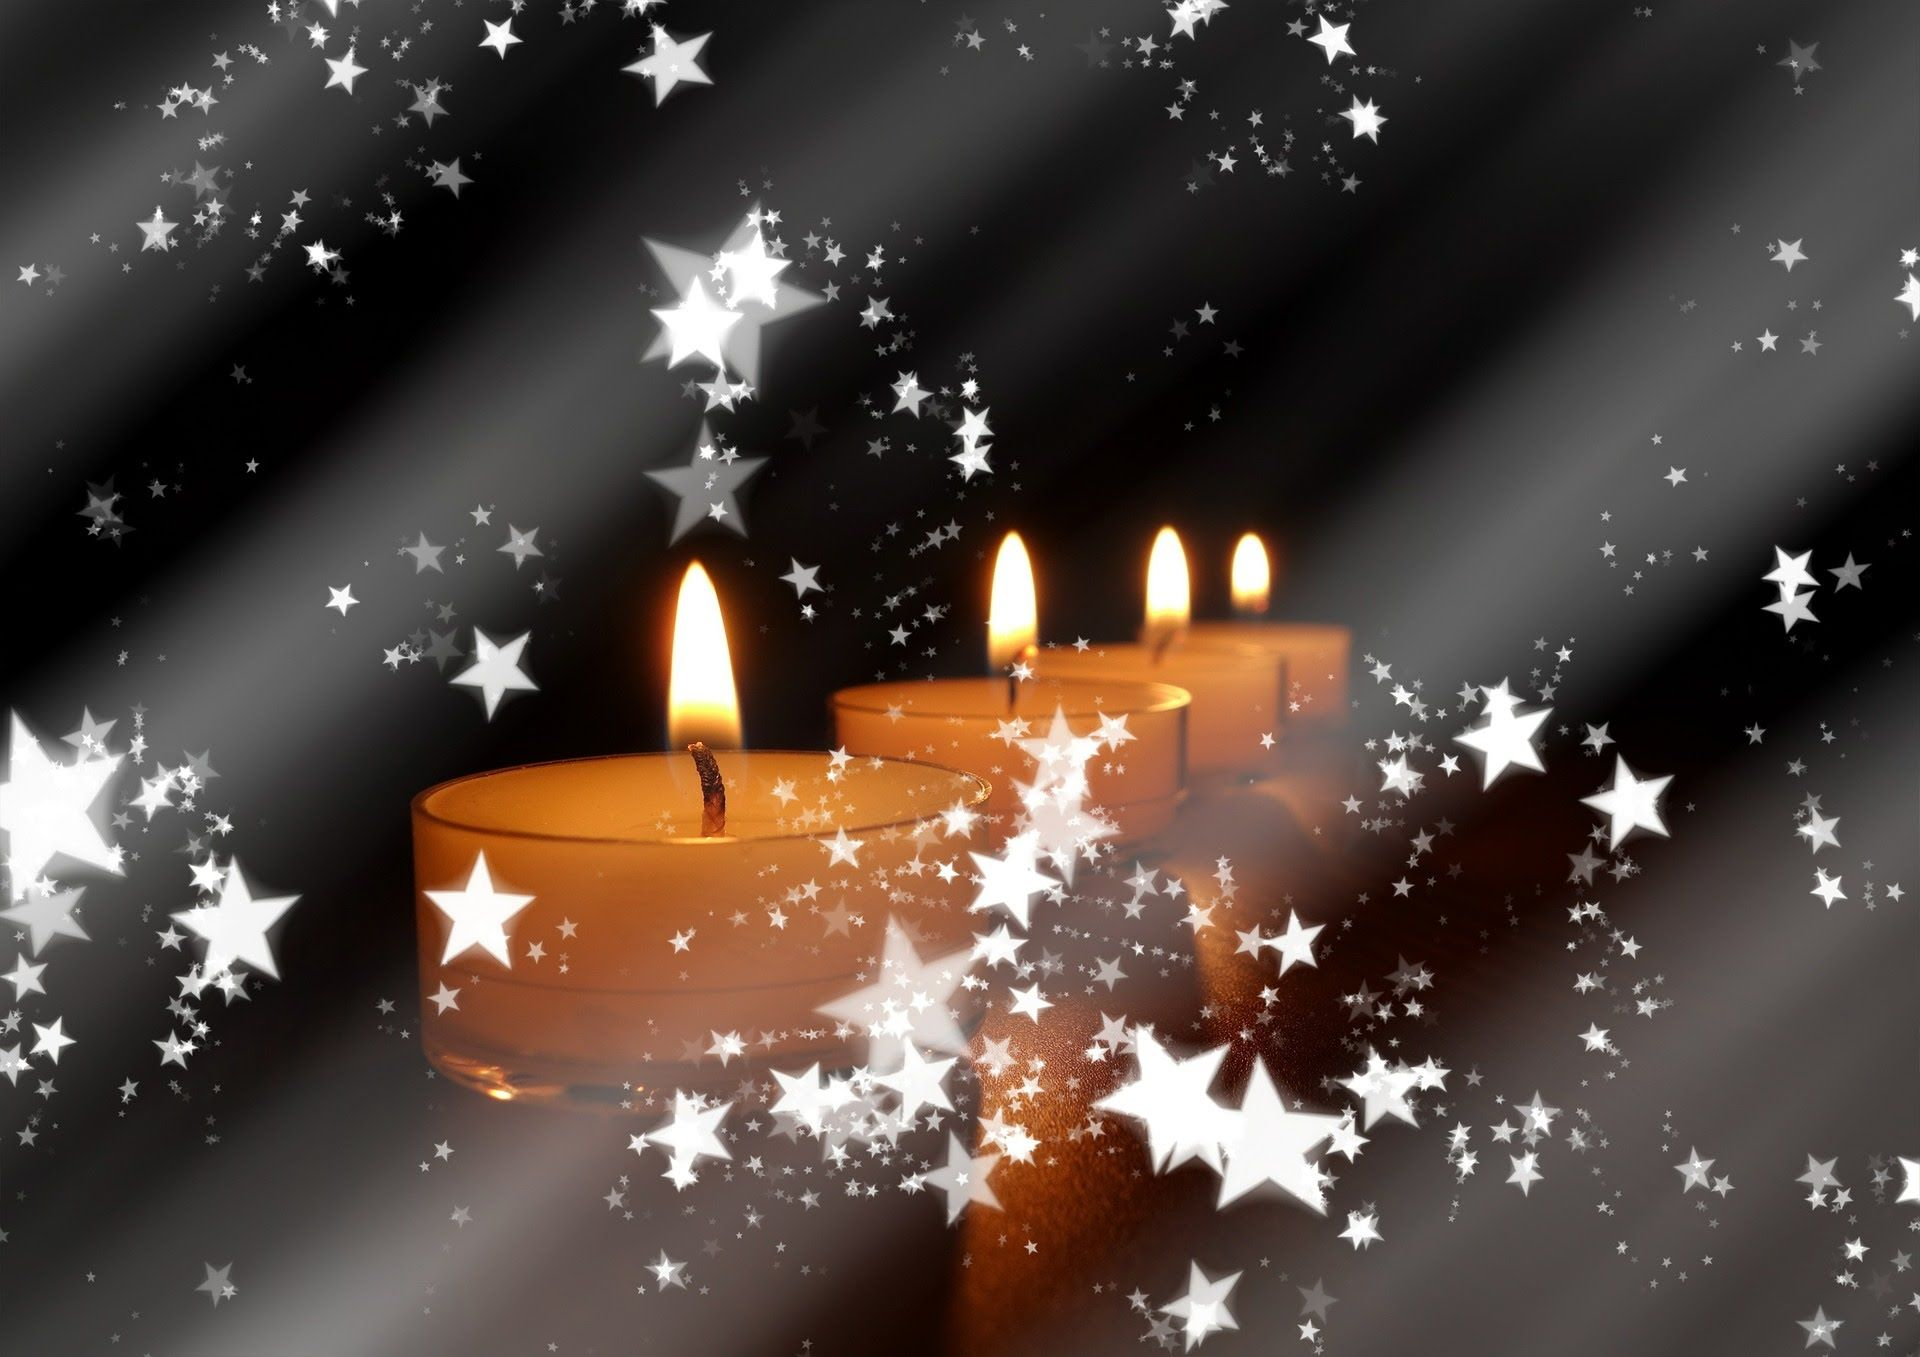 Bilder Zum Advent Grüße Zum 4 Advent Greetings To 4 Advent Grüße Zum Advent